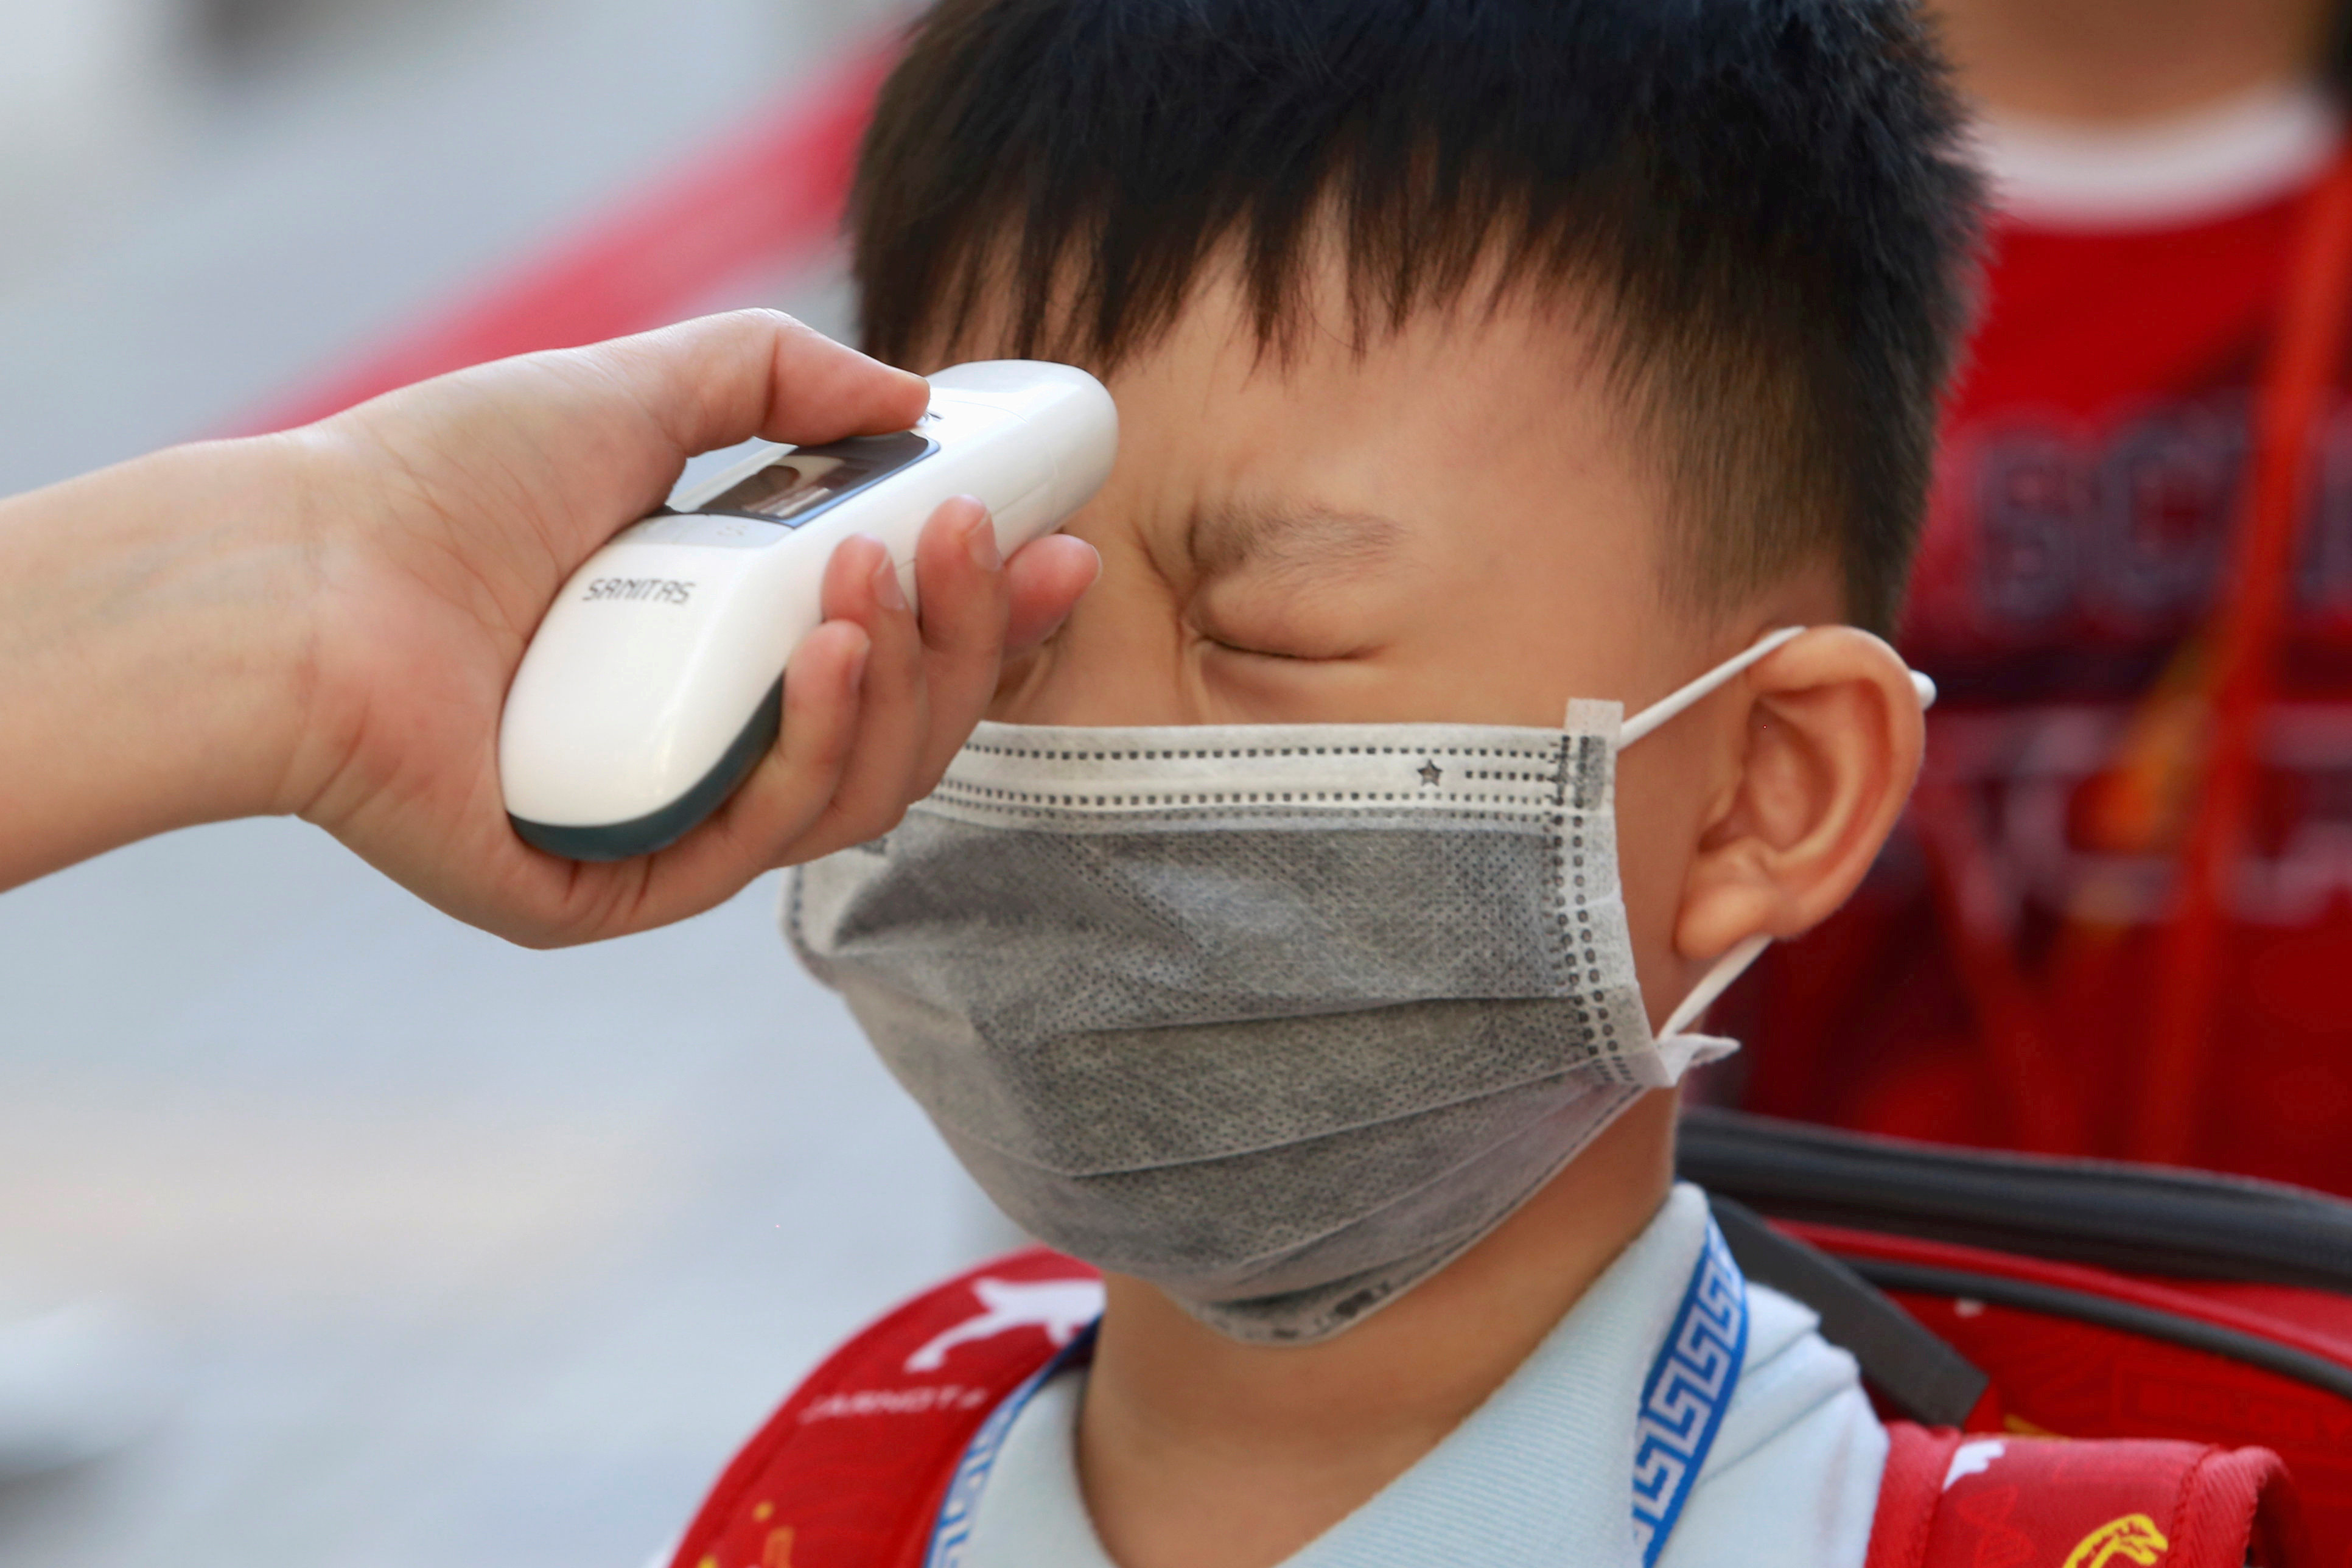 A primary school student undergoes a temperature check on the first day of class after the government eased a nationwide lockdown during the coronavirus disease (COVID-19) outbreak in Ho Chi Minh, Vietnam May 11, 2020. REUTERS/Yen Duong     TPX IMAGES OF THE DAY - RC23MG9G60XF